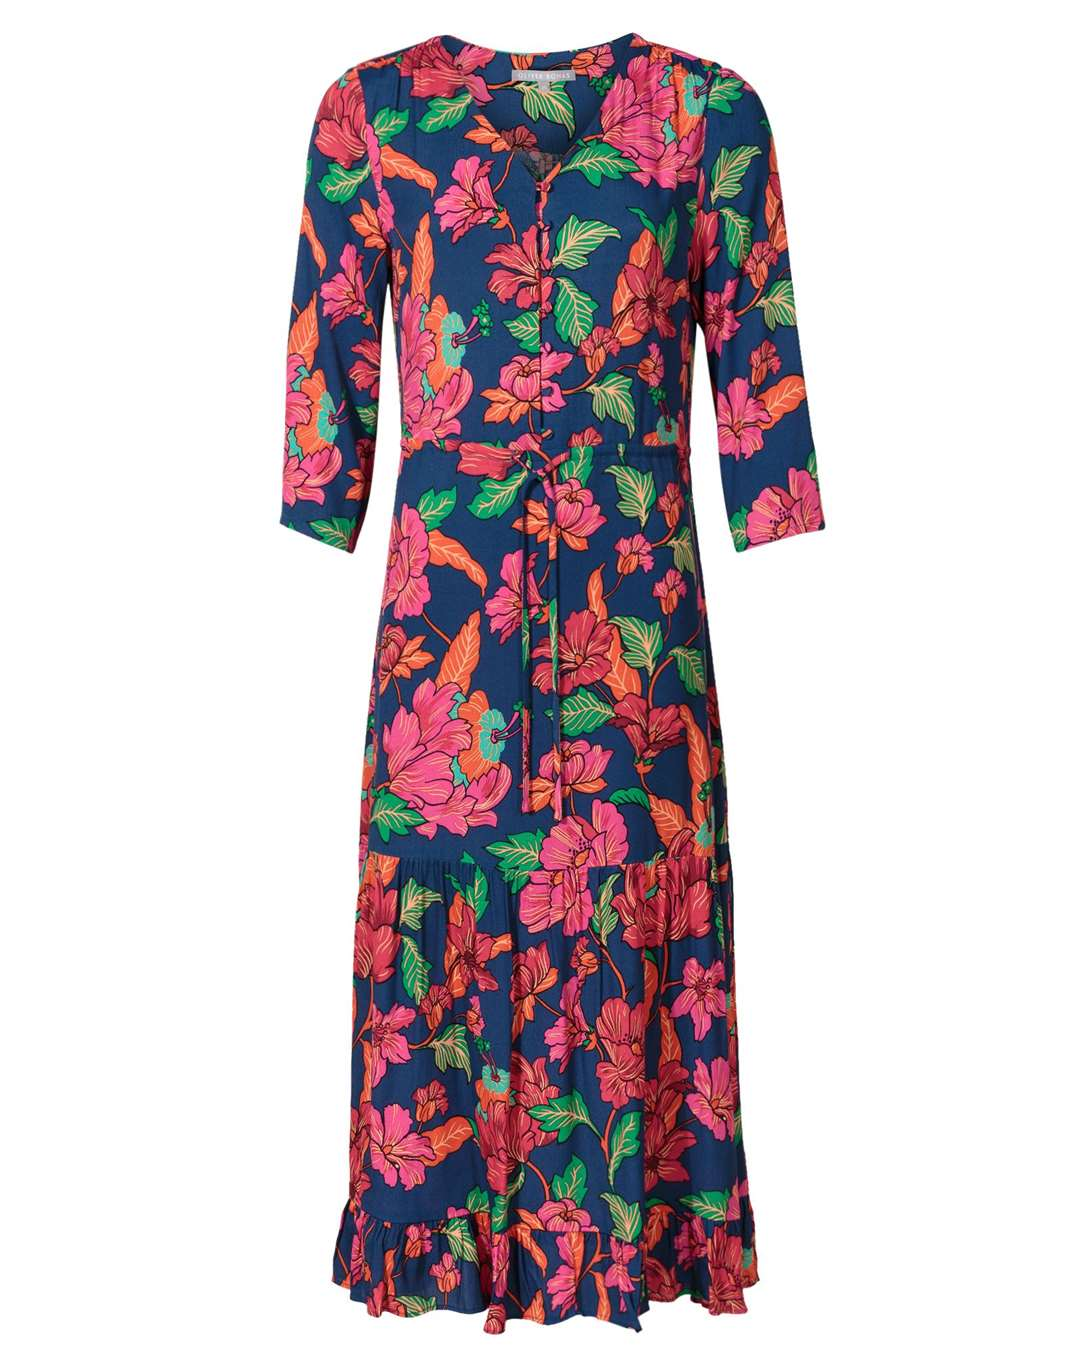 PRINTS Oliver Bonas Bright Blue Floral Print Dress, £75 (13640661)